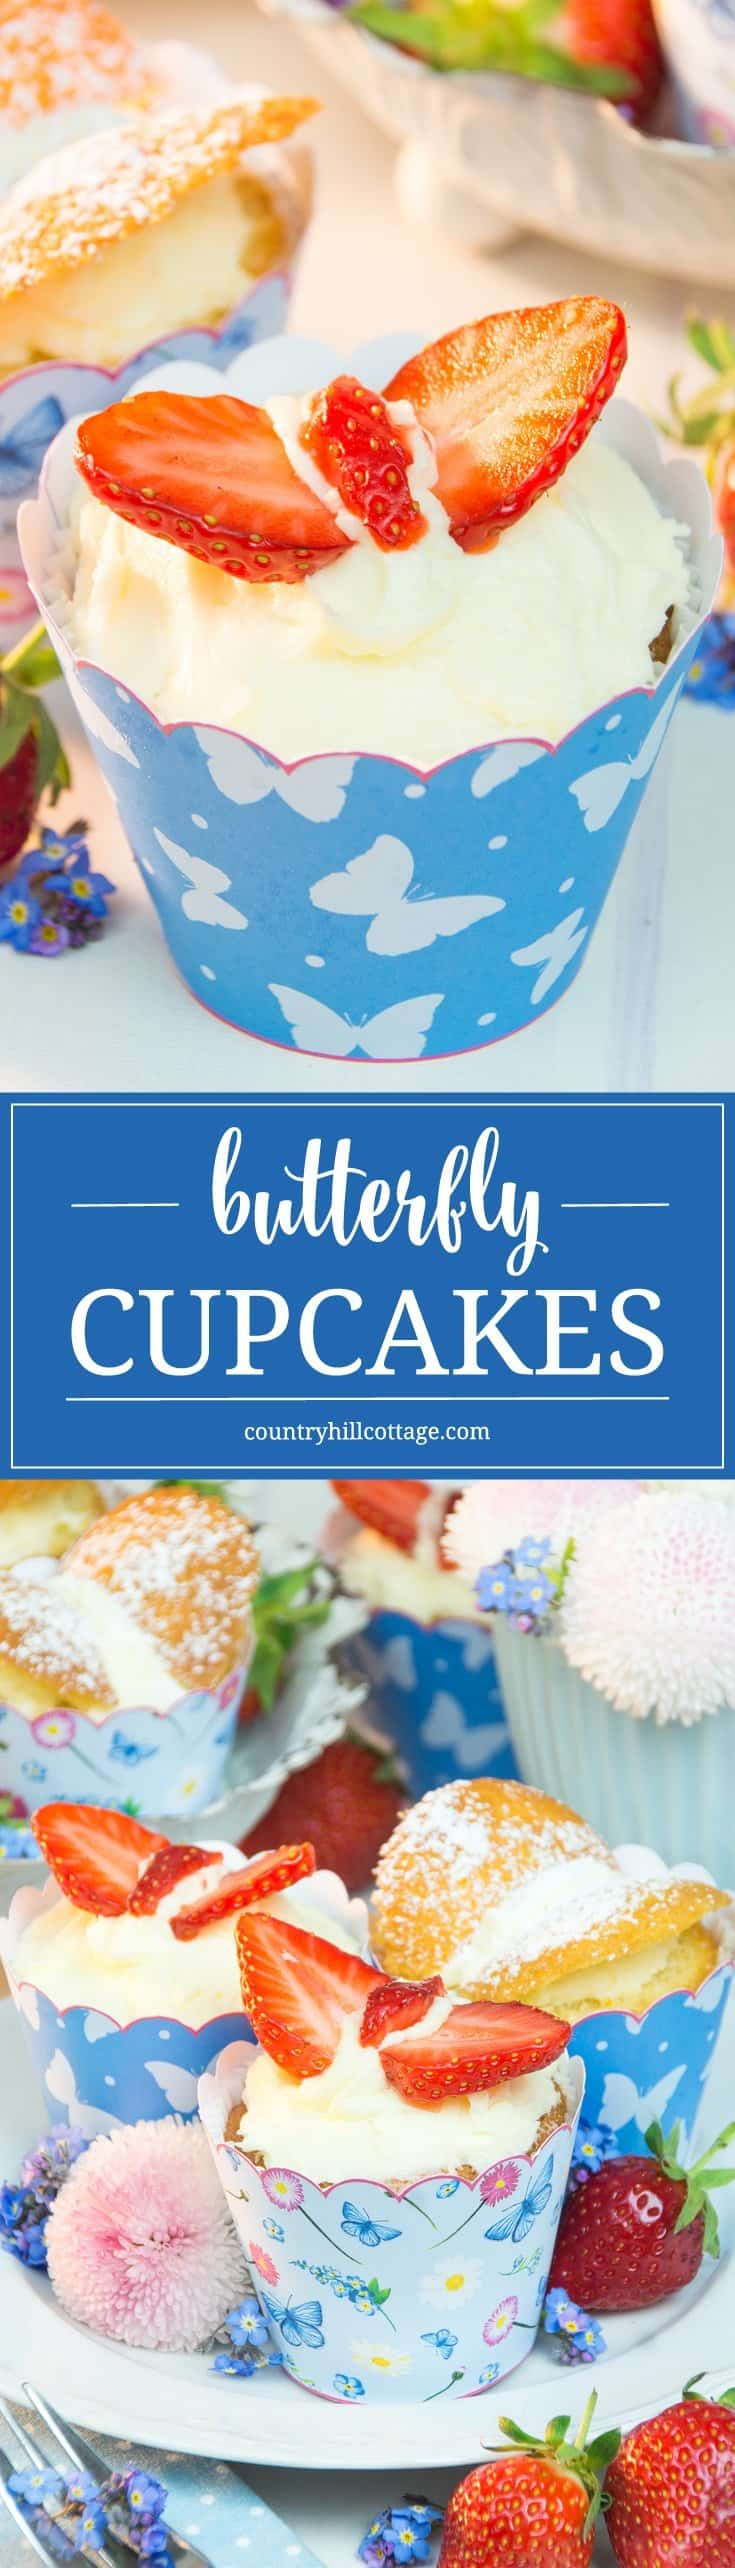 Our butterfly cupcakes are perfect treats for Mother's Day, birthdays or bridal showers. They look extra cute served in our printable cupcake wrappers. #recipe #cupcake #butterflycupcakes | countryhillcottage.com